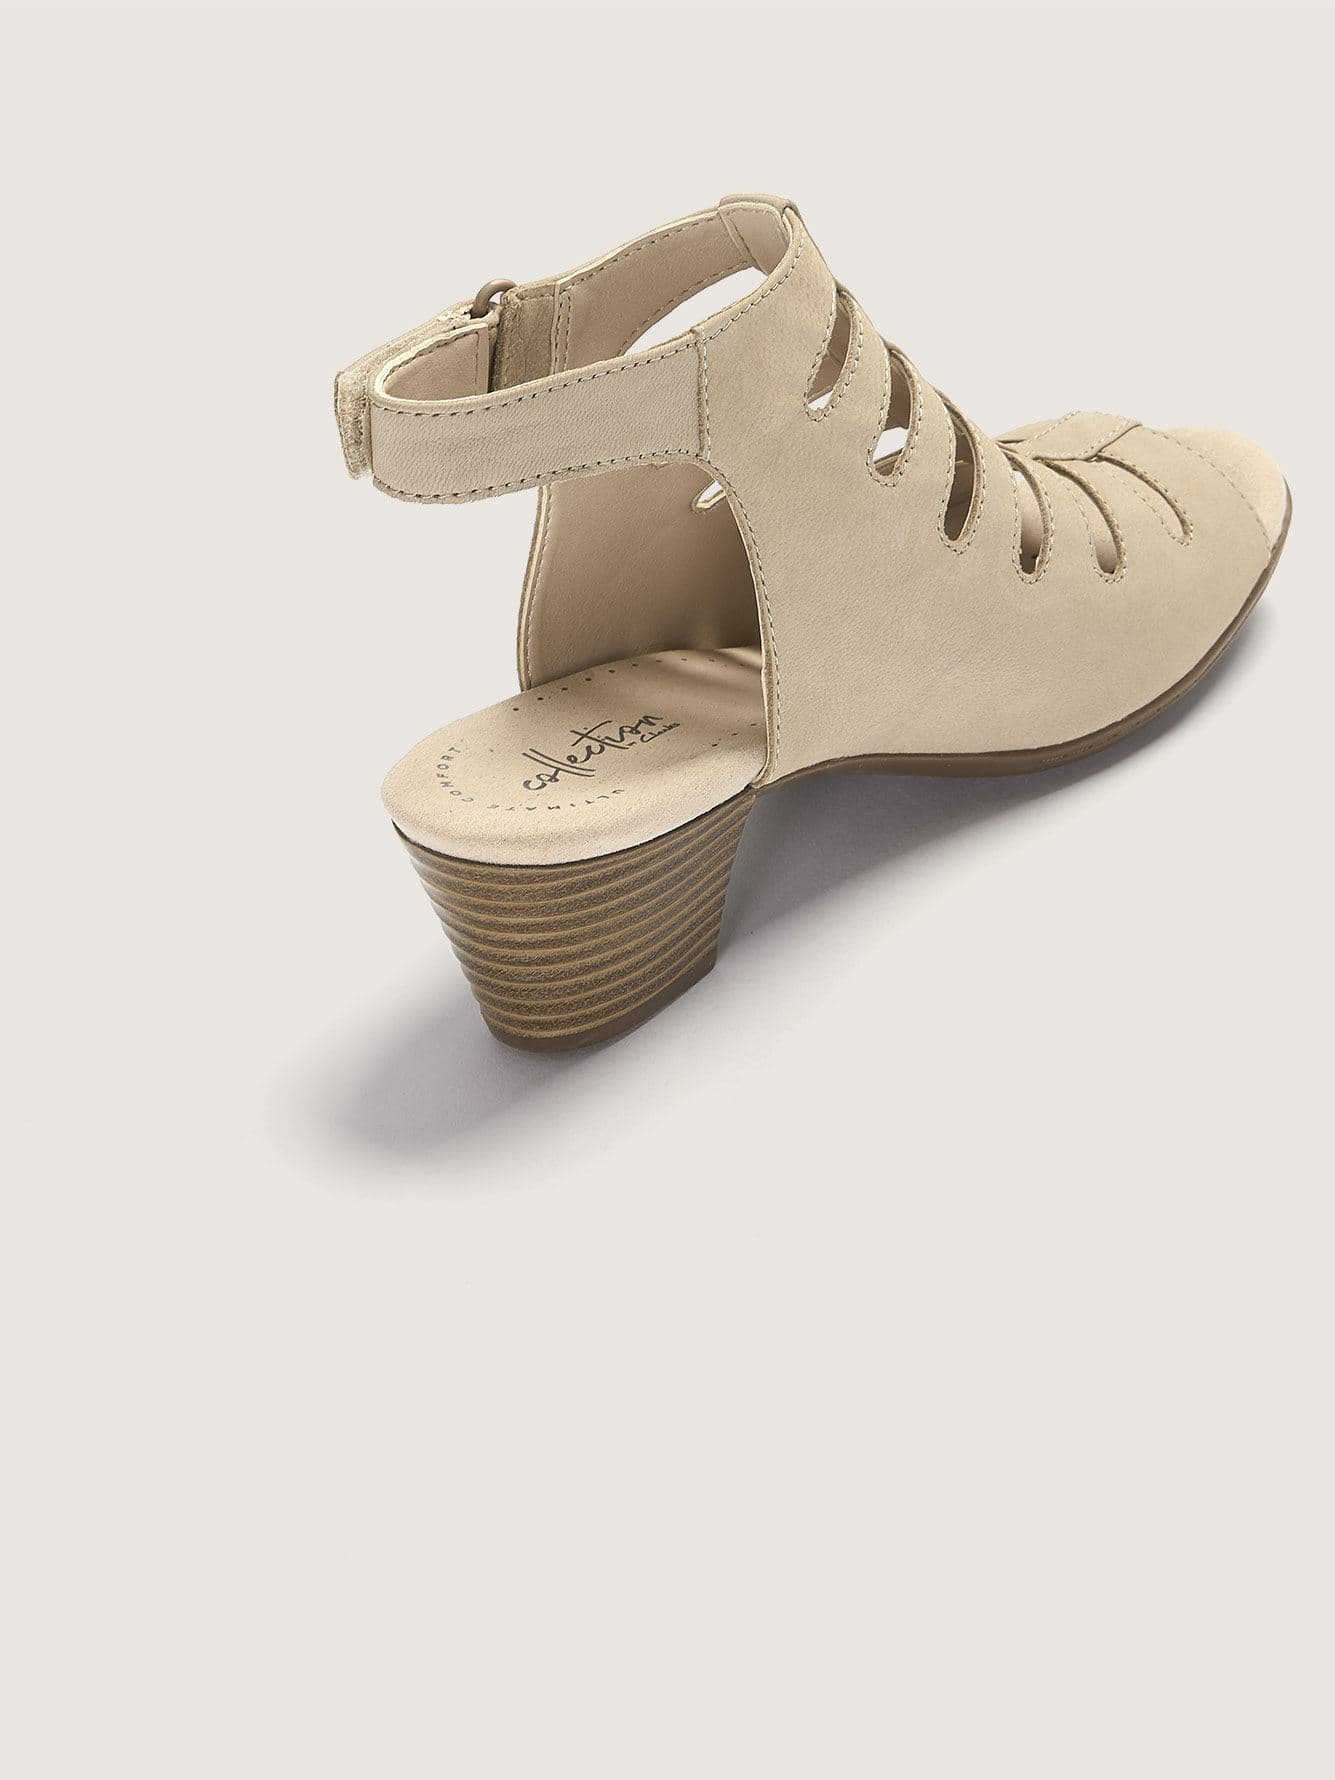 Wide High Heel Valarie Shelly Sandals - Clarks